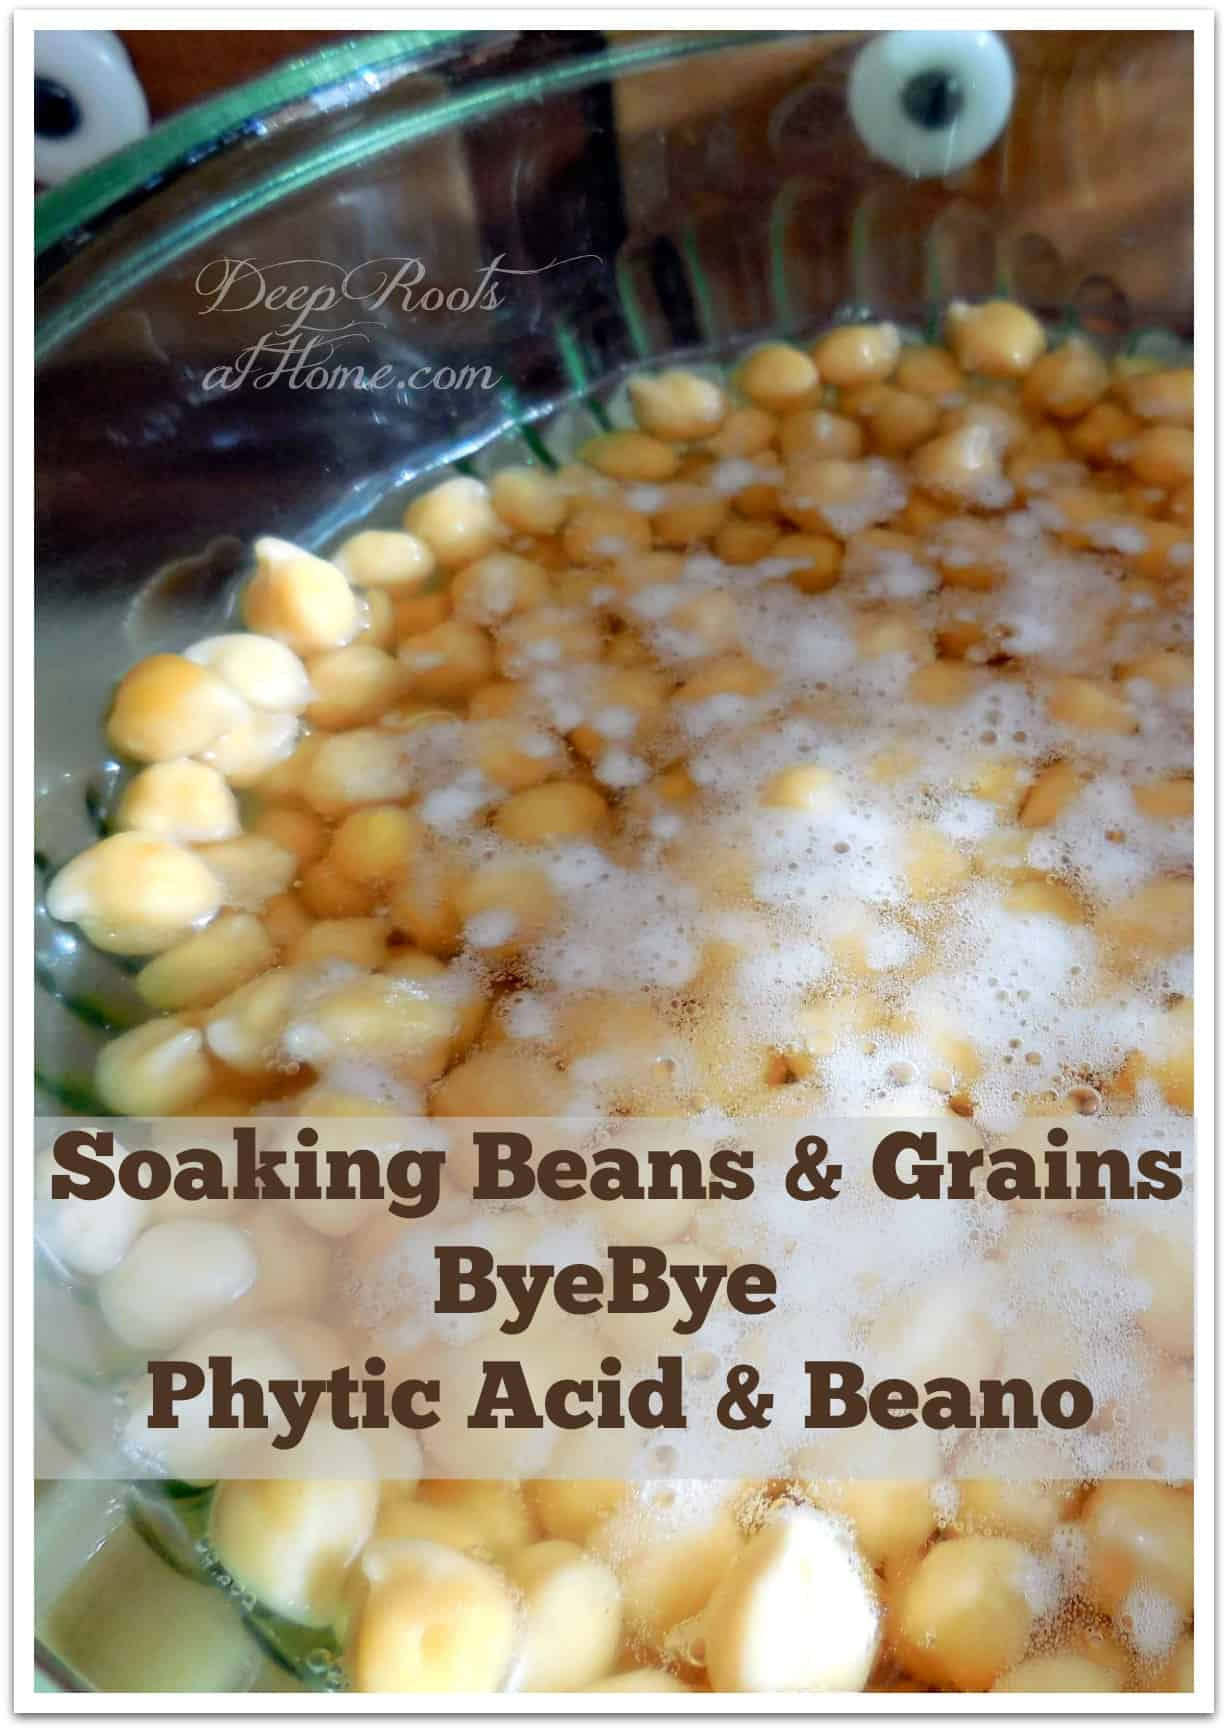 Soaking Beans and Grains ~ ByeBye Phytic Acid and Beano. Soaking chick peas (garbanzo beans) in slightly acidified water to remove phytic acid